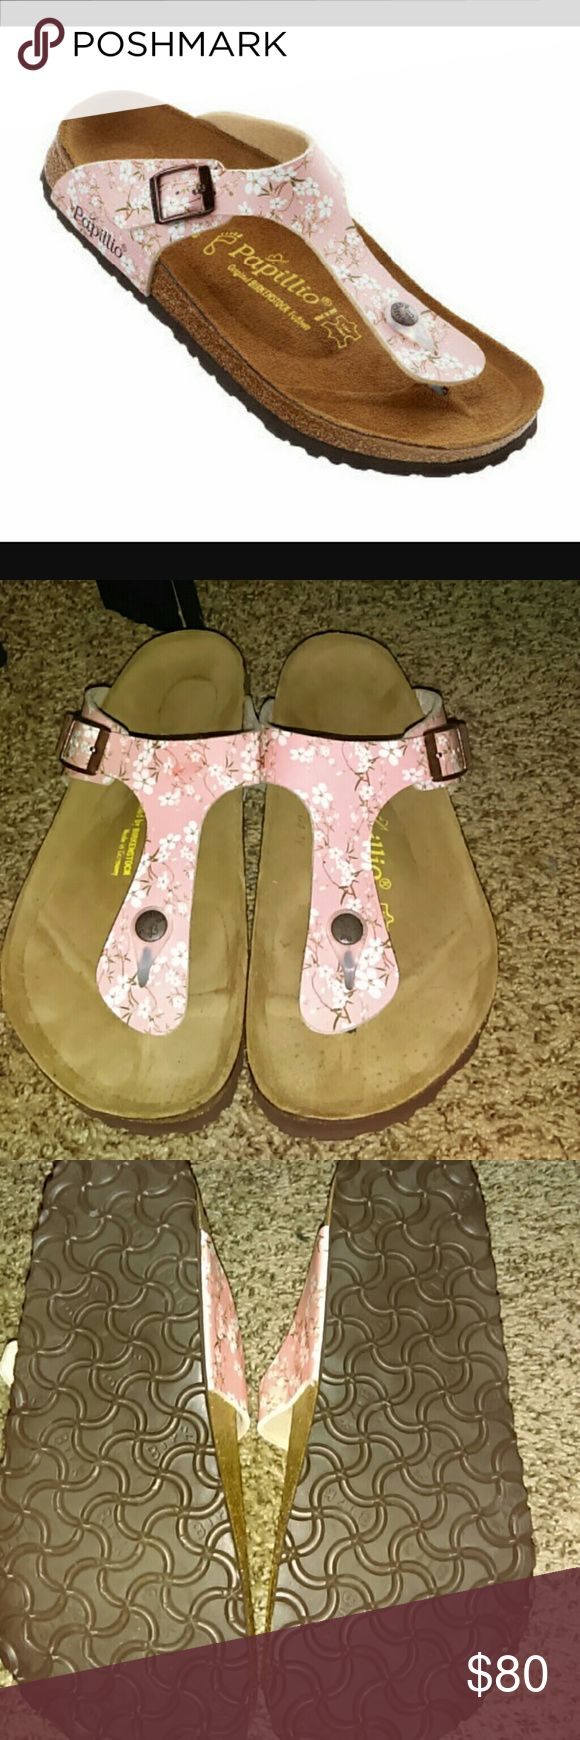 NWOT Birkenstock Sandal Papillio by Birkenstock Gizeh Floral Print Thong Sandals  Worn ONCE INSIDE the house, these are NEW!! Even the bottom of the shoes is perfect!!! No flaws!!! As I've stated here before I normally do NOT keep shoe boxes (Too many shoes not enough closet space hehe)  :( so no box!! These are beautiful!! Wish they fit better, my foot is super wide :( needs a loving home these were LIMITED ADDITION, you will NOT find these anywhere else size 38/L7  100% AUTHENTIC!!   NO…